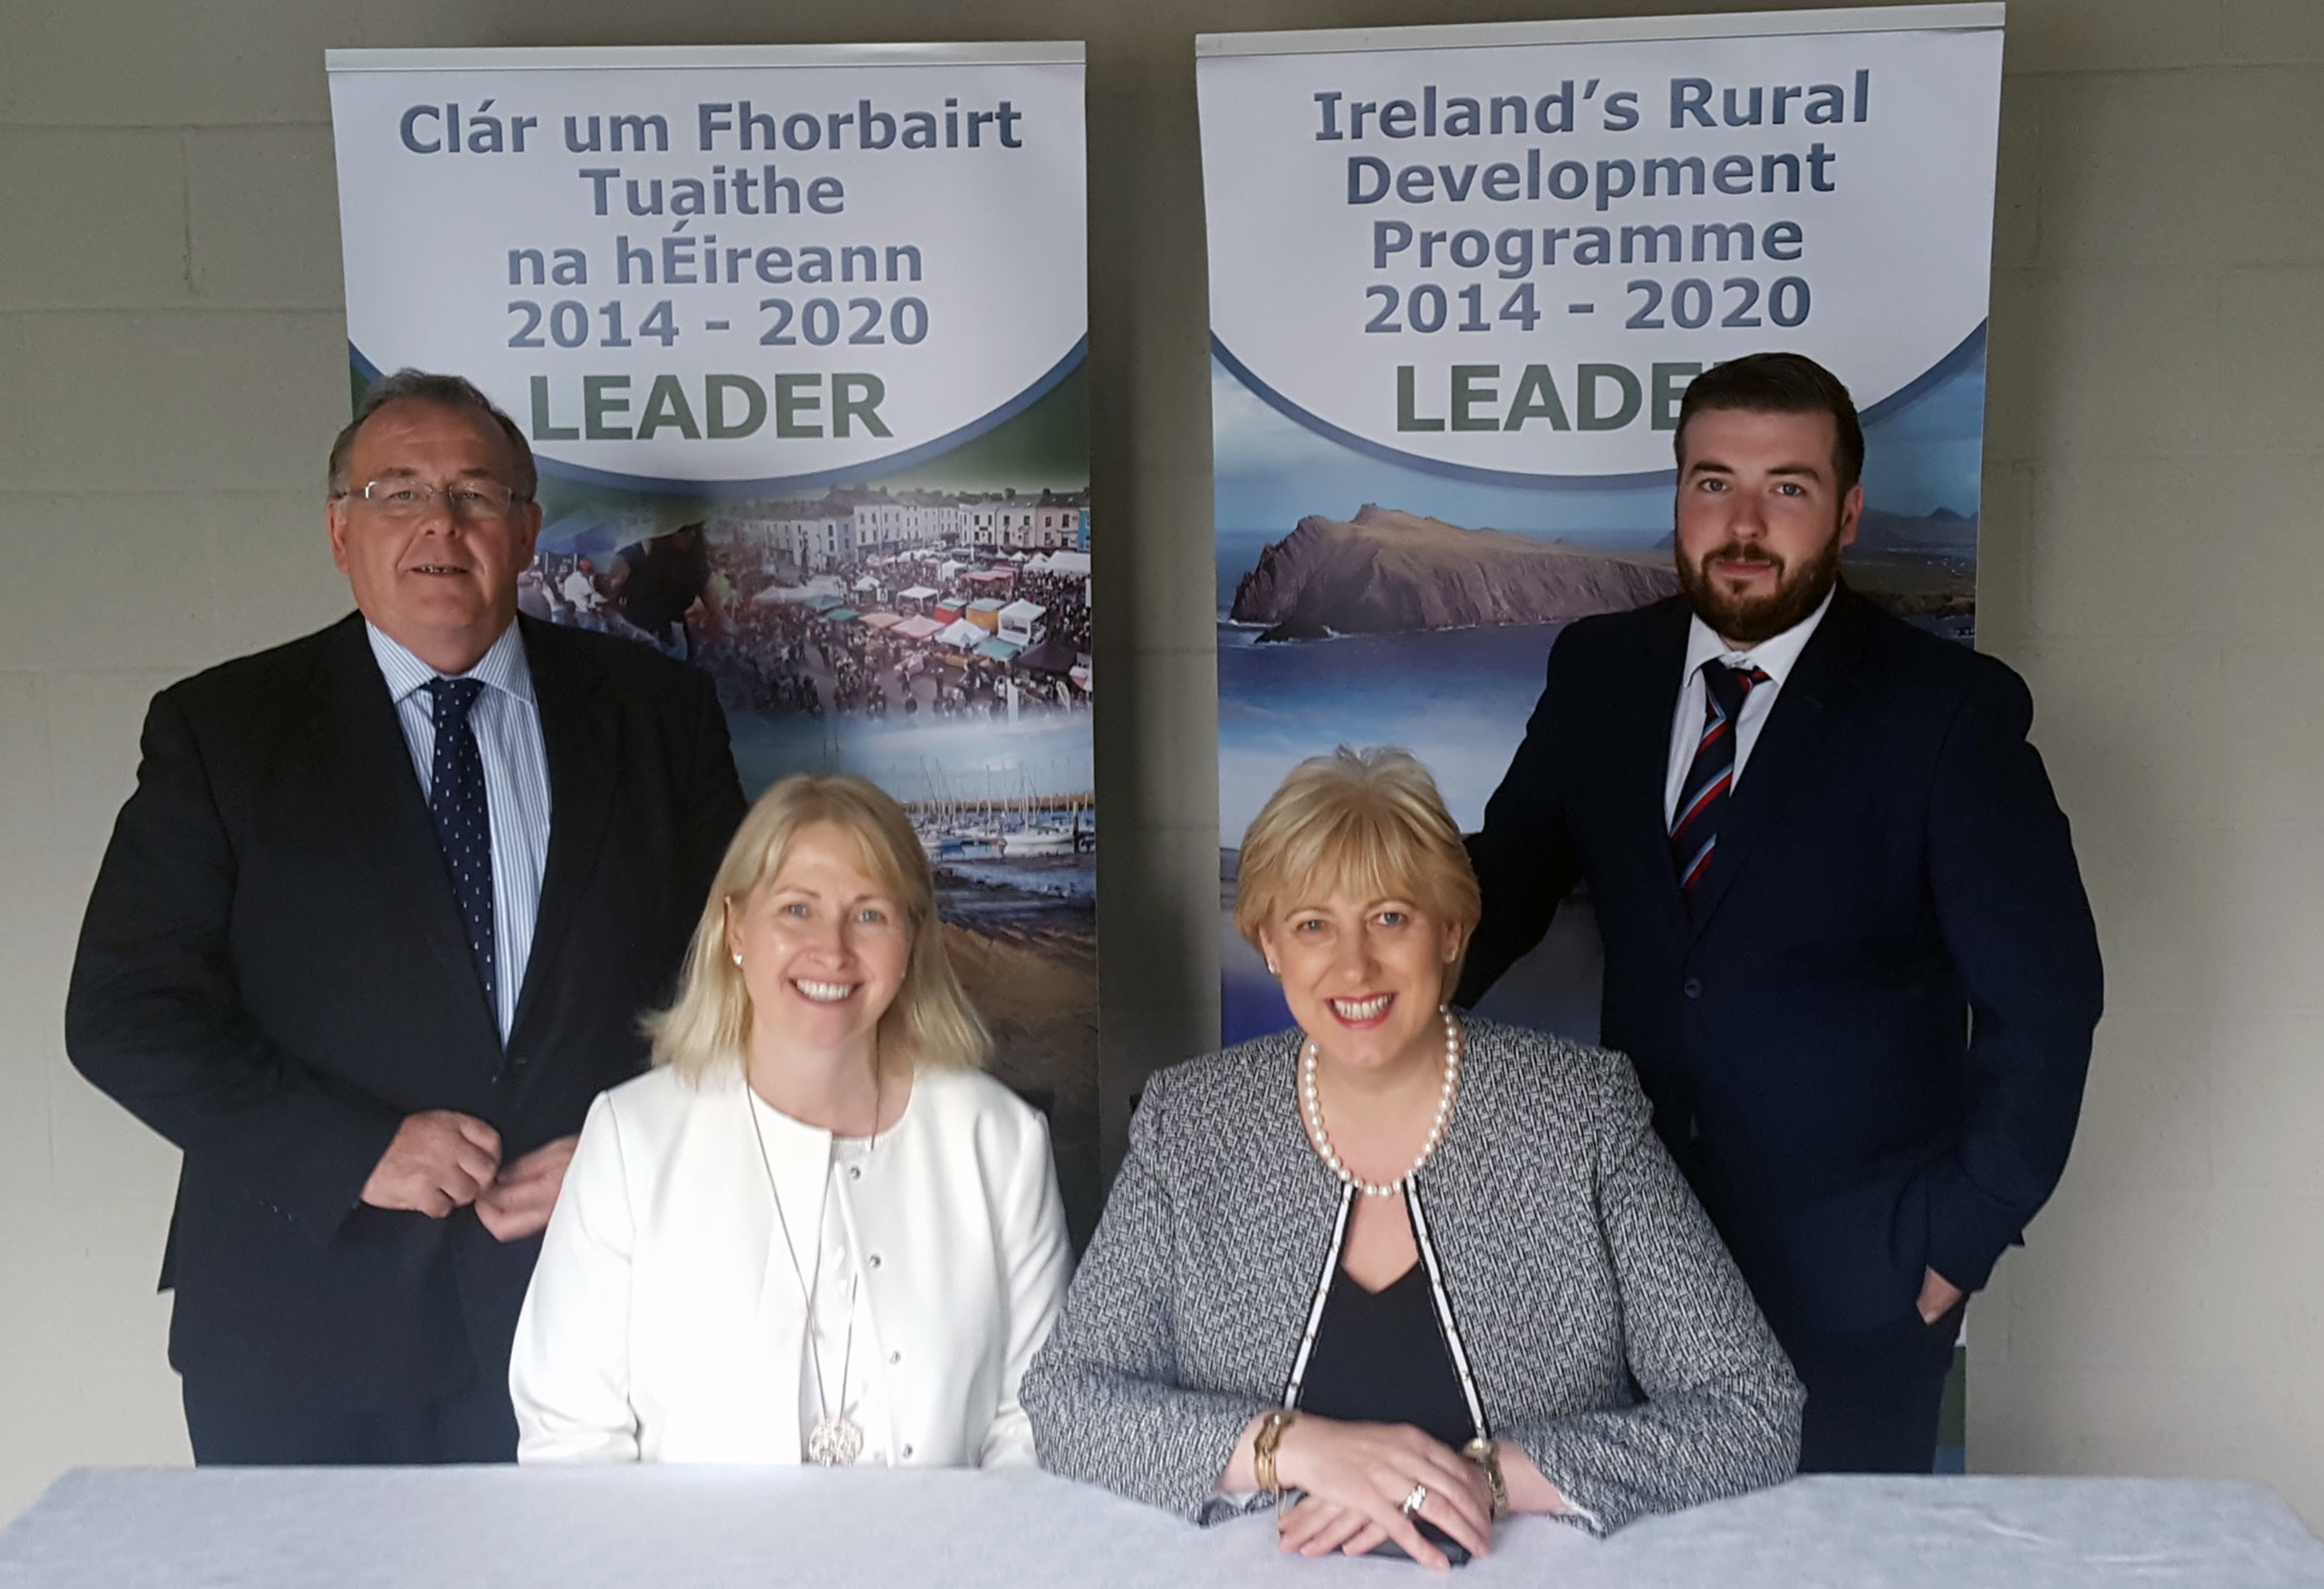 Rural Affairs Minister Heather Humphreys (front right) pictured at the launch of the 2014-2020 LEADER programme in the Virginia Show Centre, The Showgrounds, Virginia, County Cavan, with Dr Maura Farrell (NUI Galway and NRN), Seamus Boland (back left) and James Claffey (Irish Rural Link and NRN).